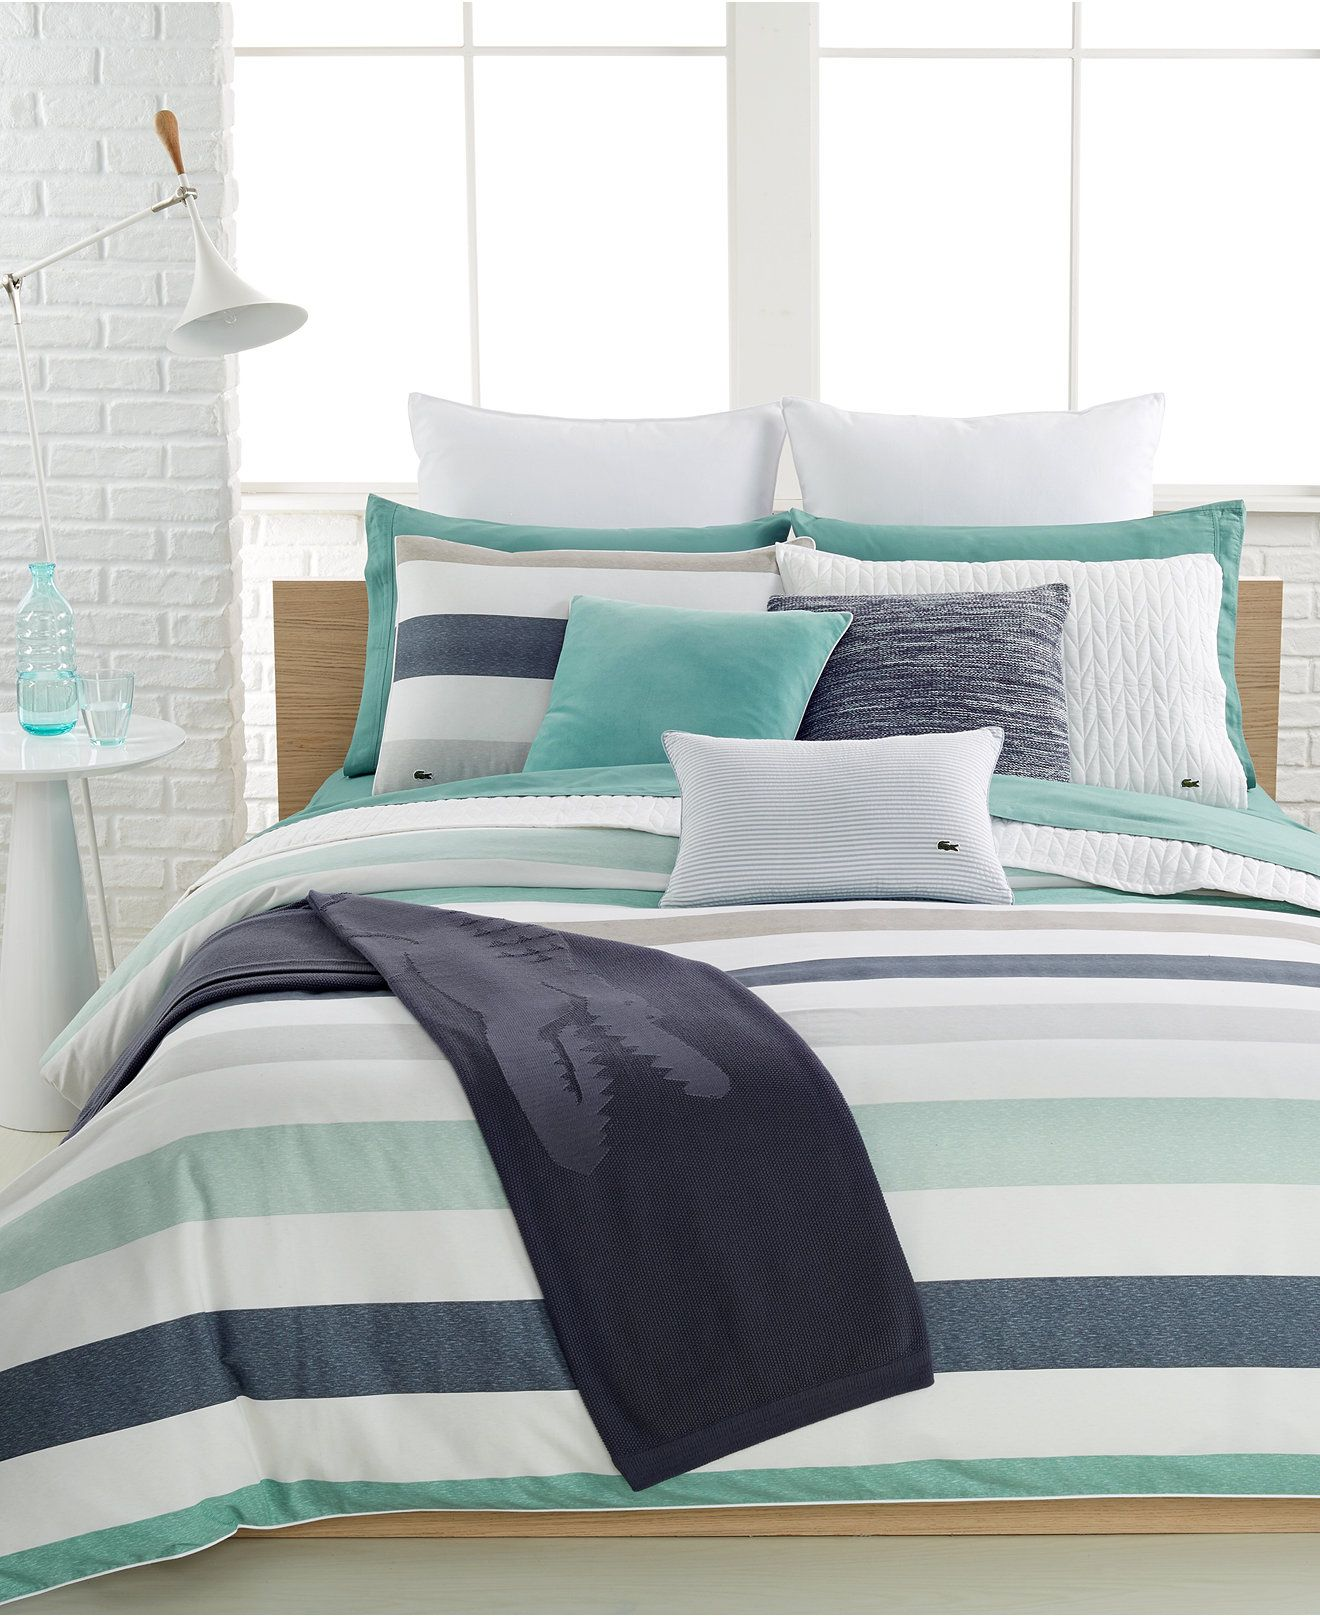 Lacoste Home Bailleul Comforter and Duvet Cover Sets   Bedding Collections    Bed   Bath. Lacoste Home Bailleul Comforter and Duvet Cover Sets   Bedding